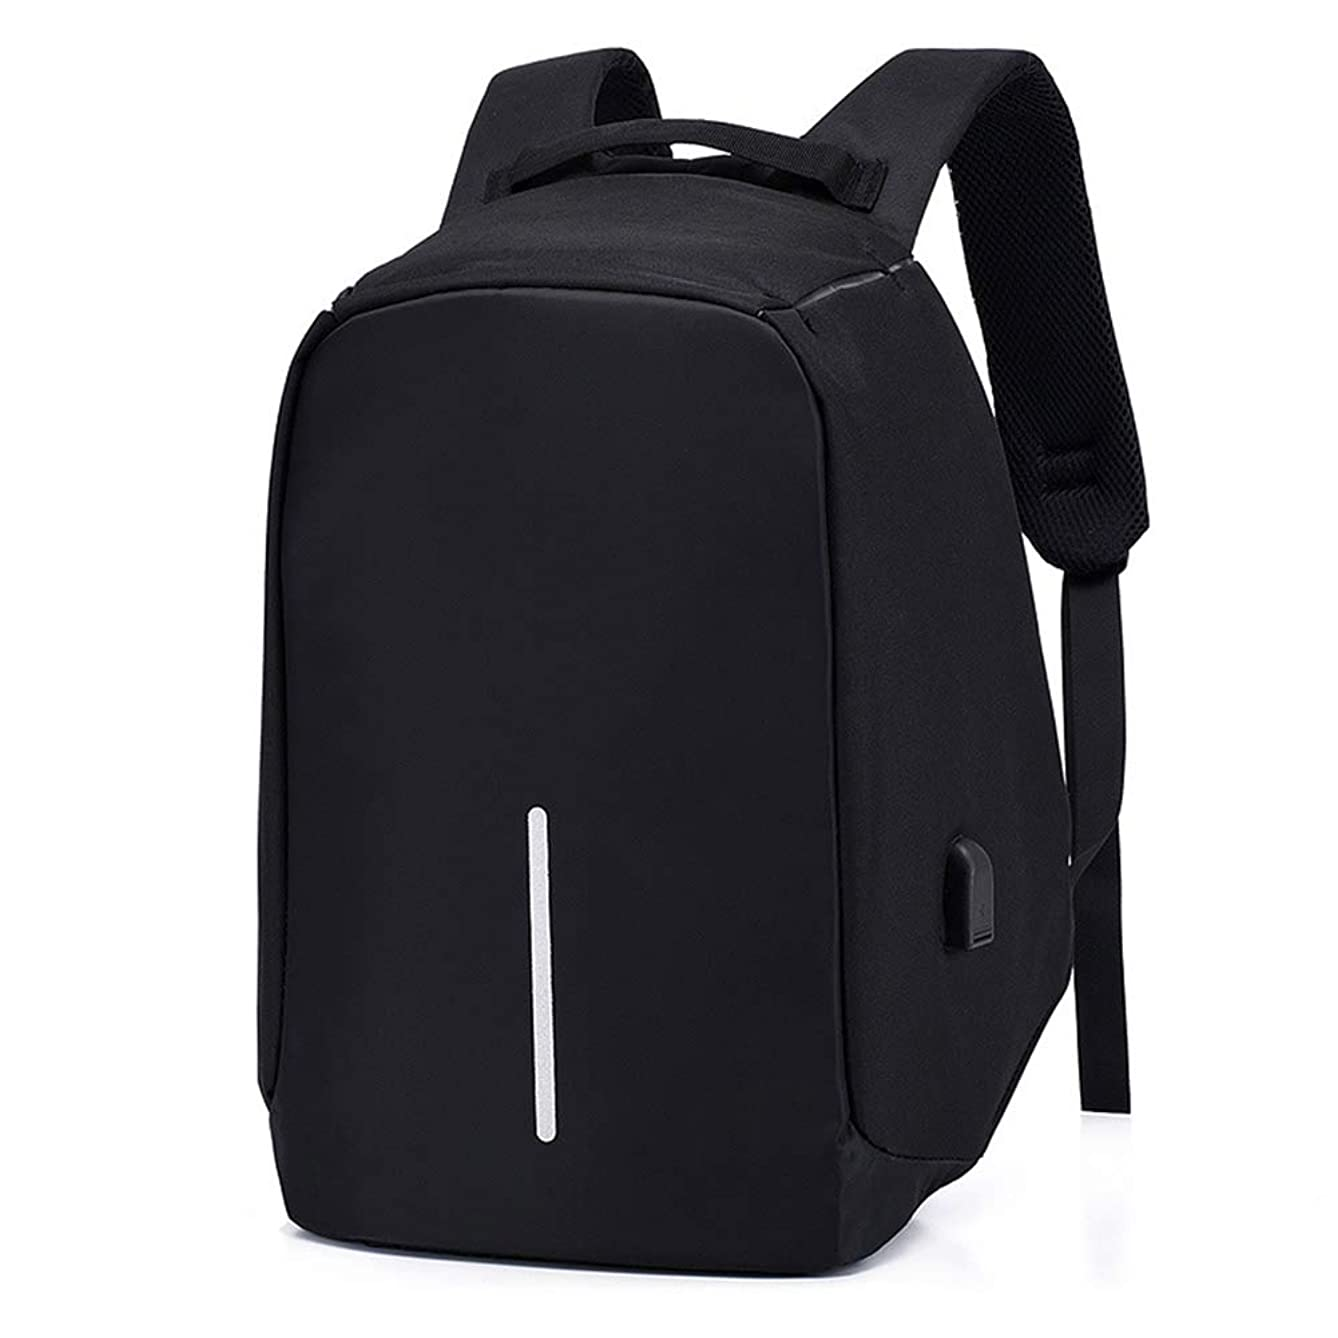 Business Travel Backpack, Laptop Backpack with USB Charging Port for Men Womens, Anti-Theftresistant College School Bookbag Computer Backpack Fits 15.6 Inch Laptop